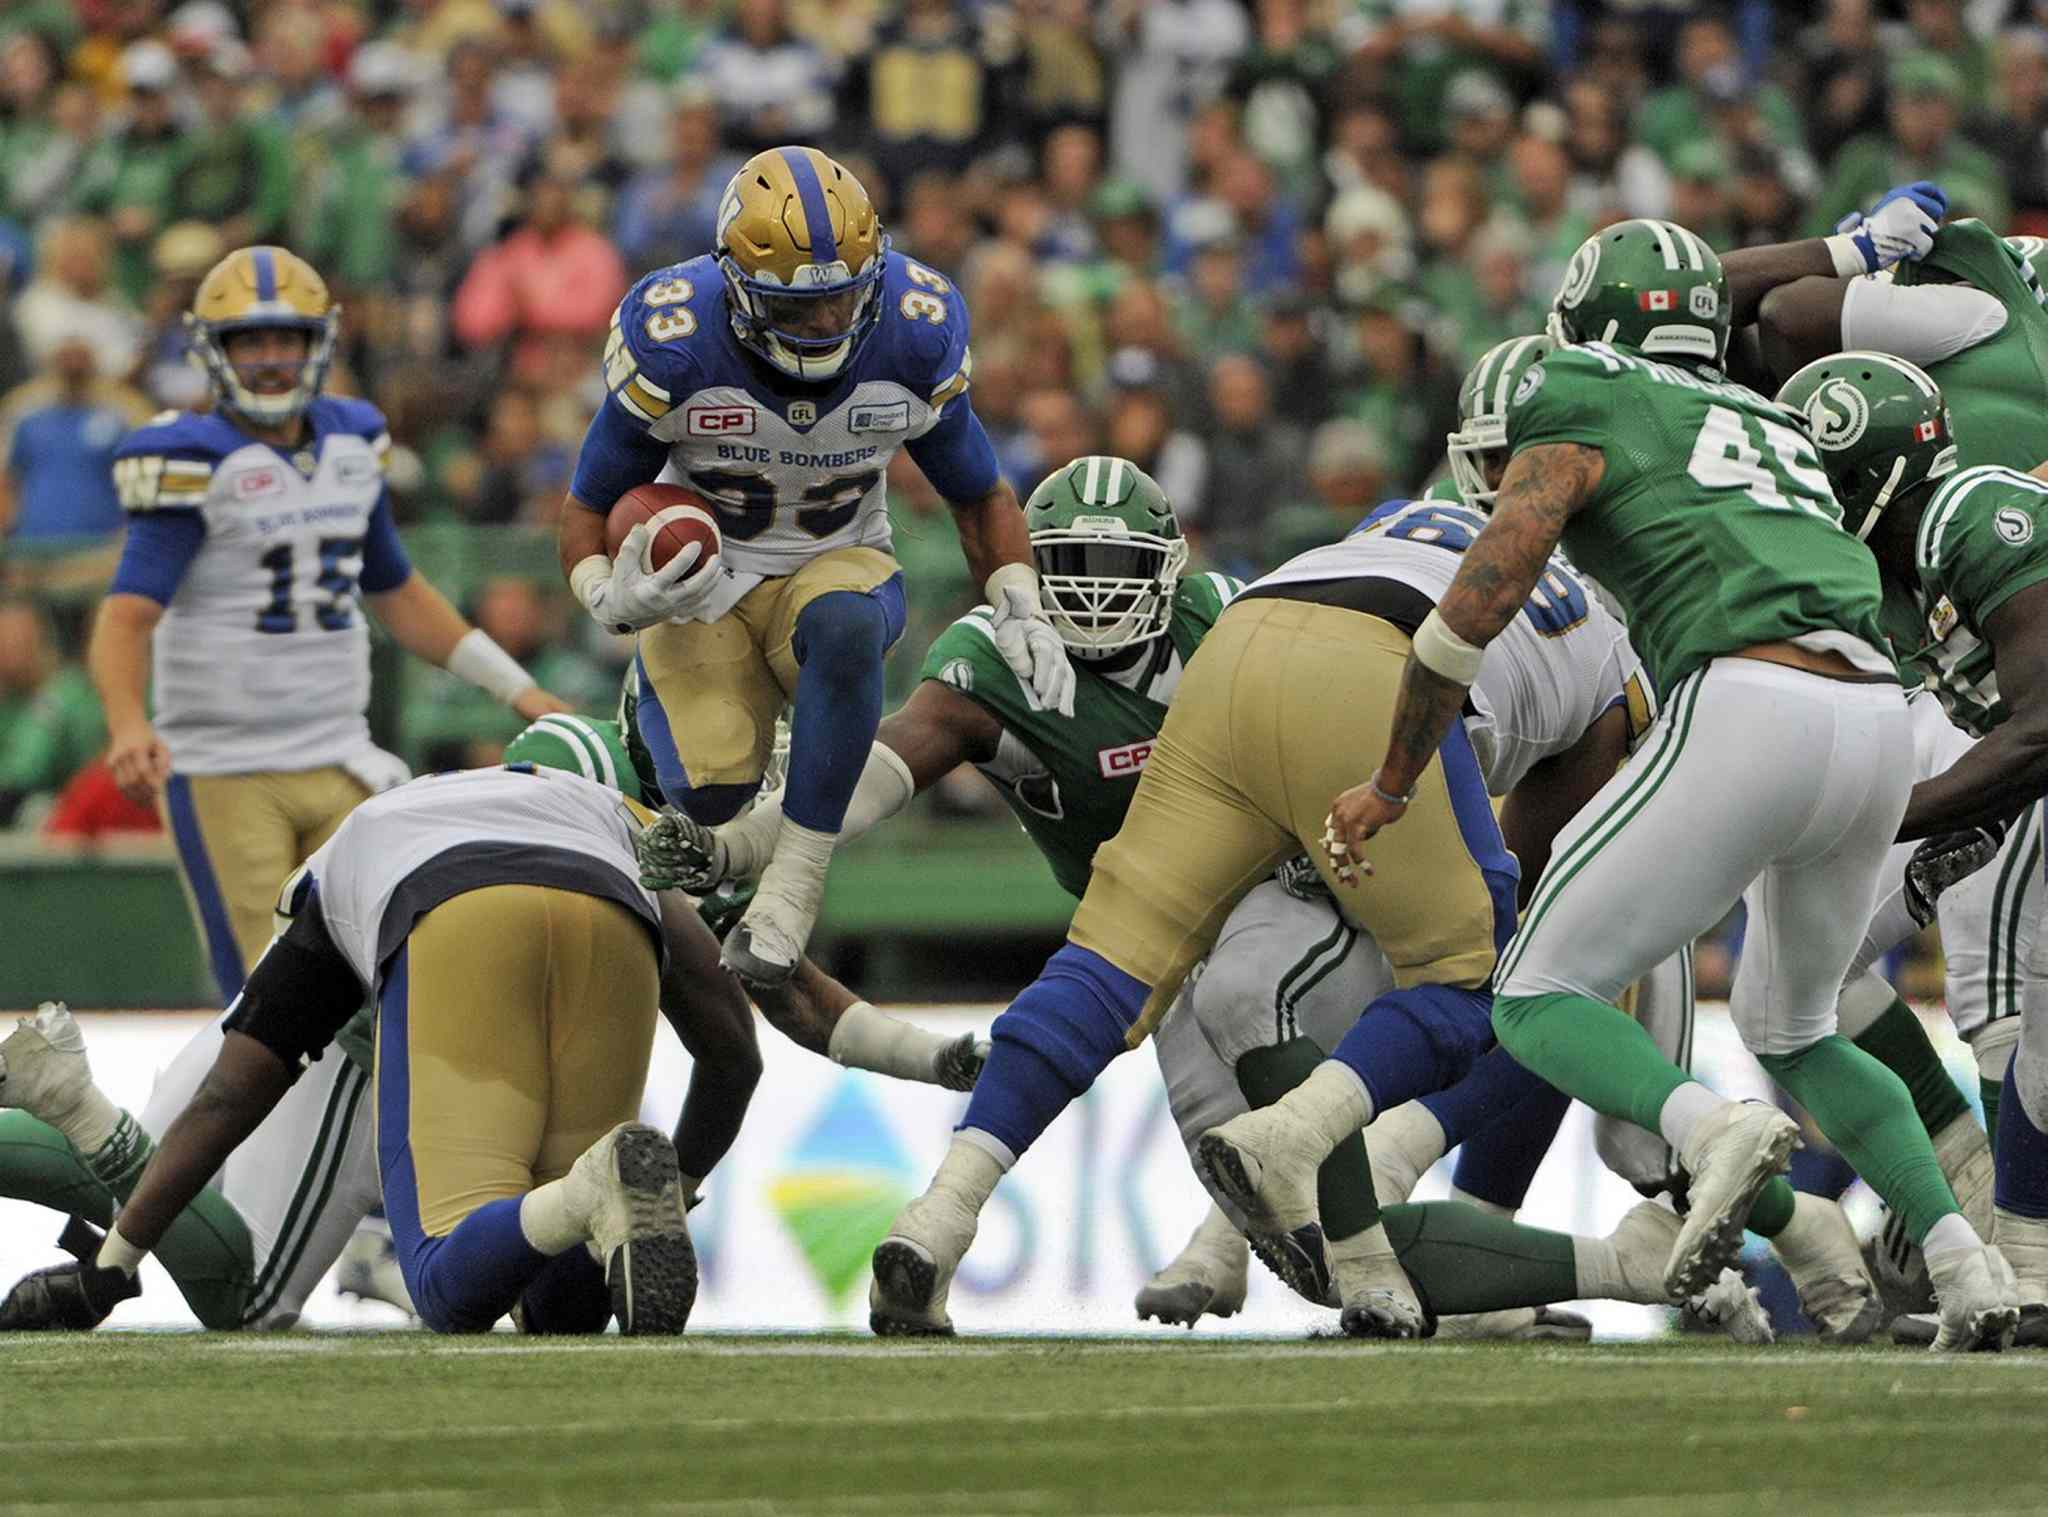 FBO_CFL_BLUE_BOMBERS_ROUGHRIDERS_2016090